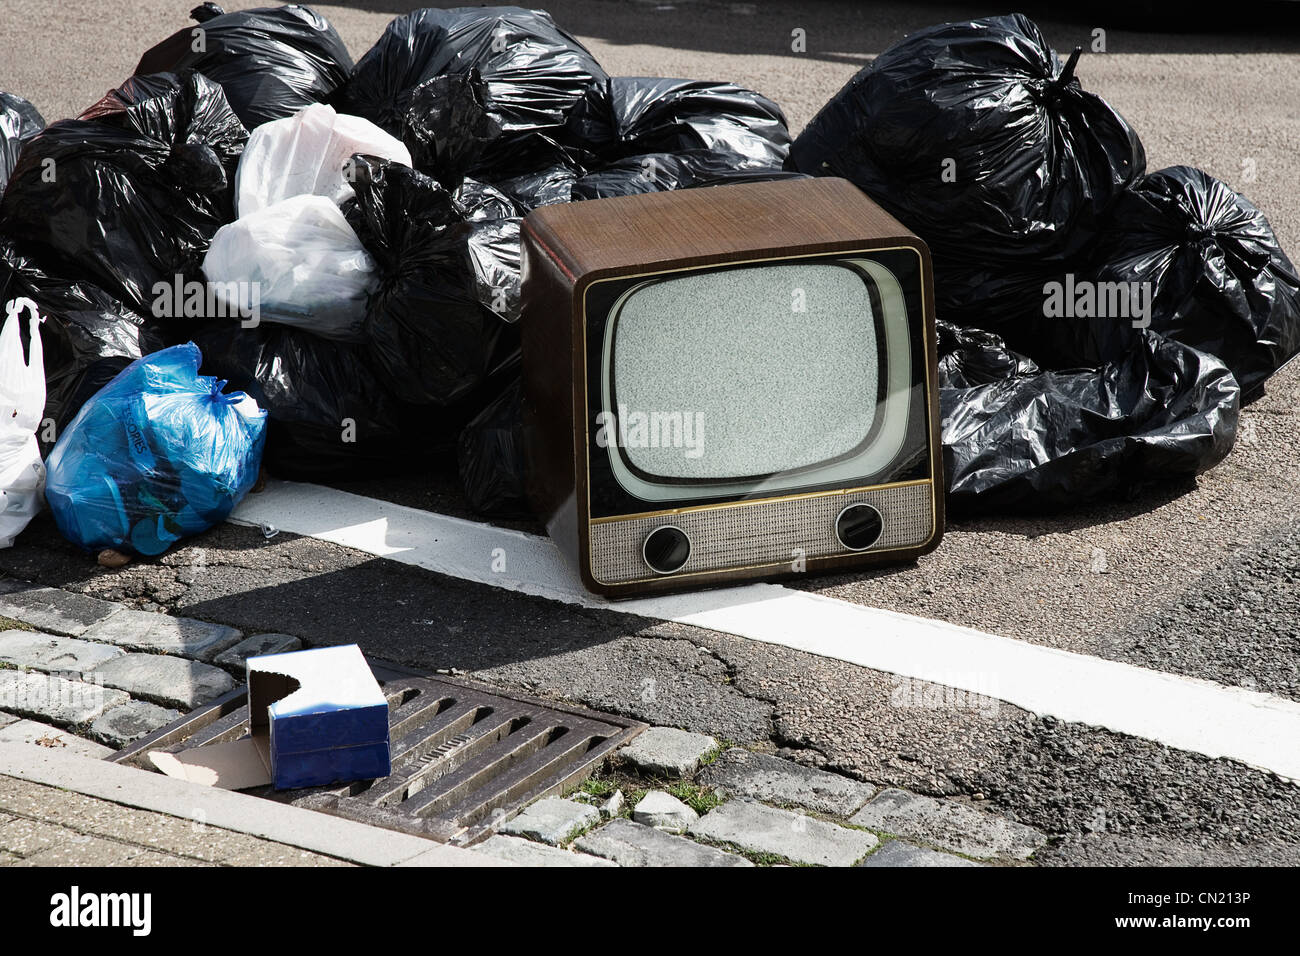 Retro television with pile of rubbish bags - Stock Image